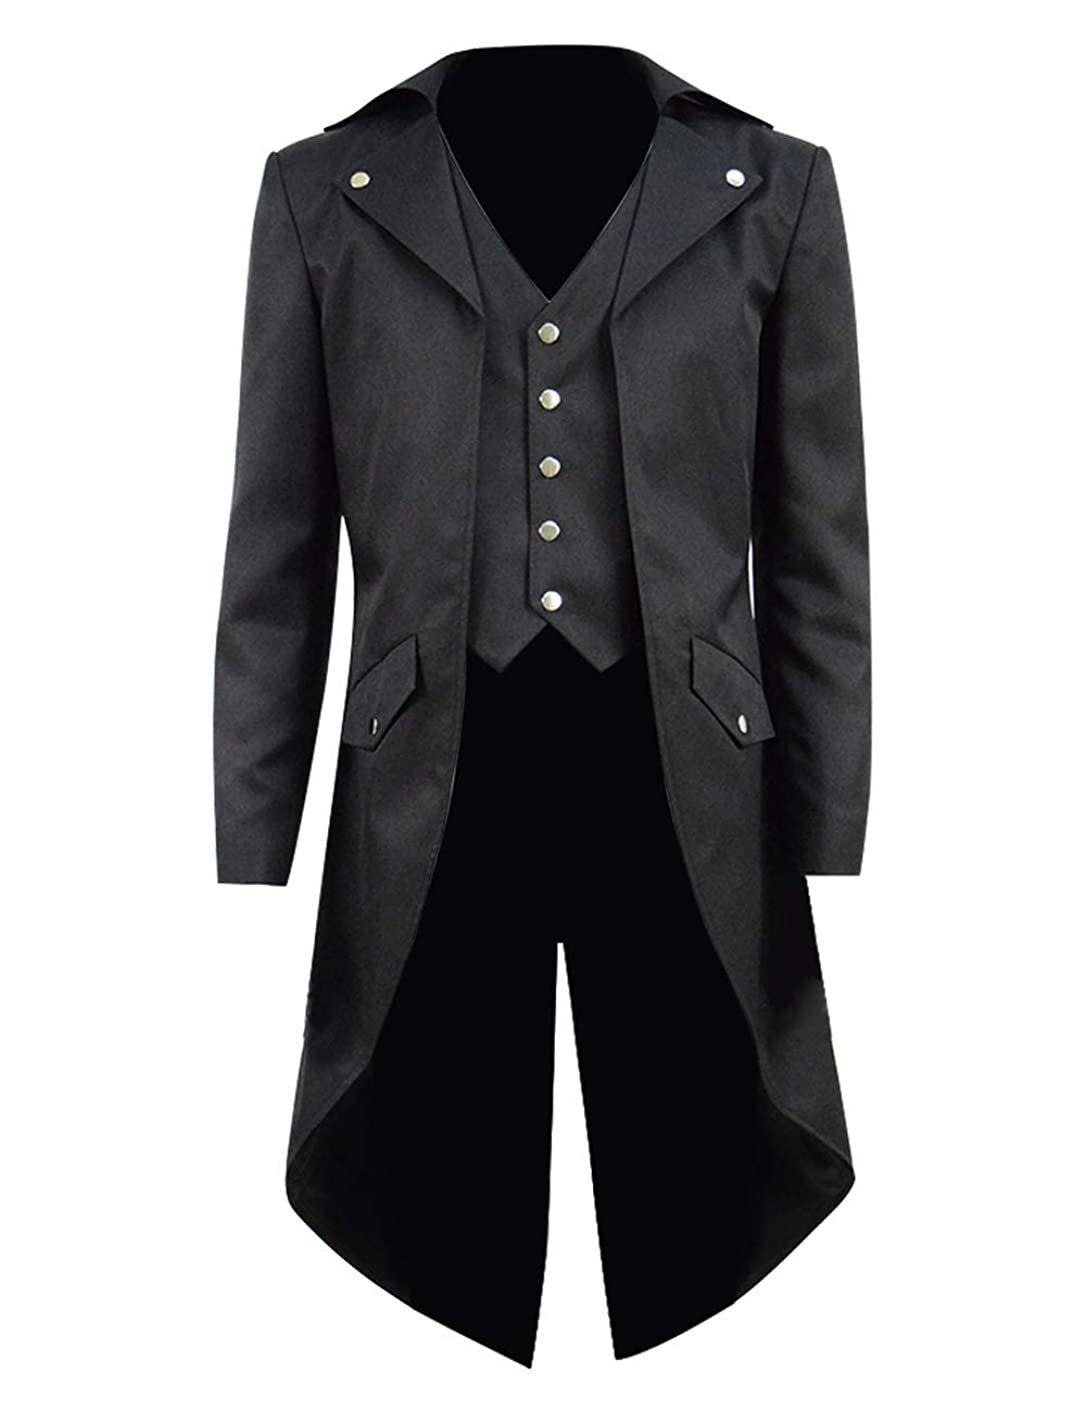 Kids Boys Steampunk Jacket Cosplay Tailcoat Gothic Long Coat with Tails(Five Buttons)